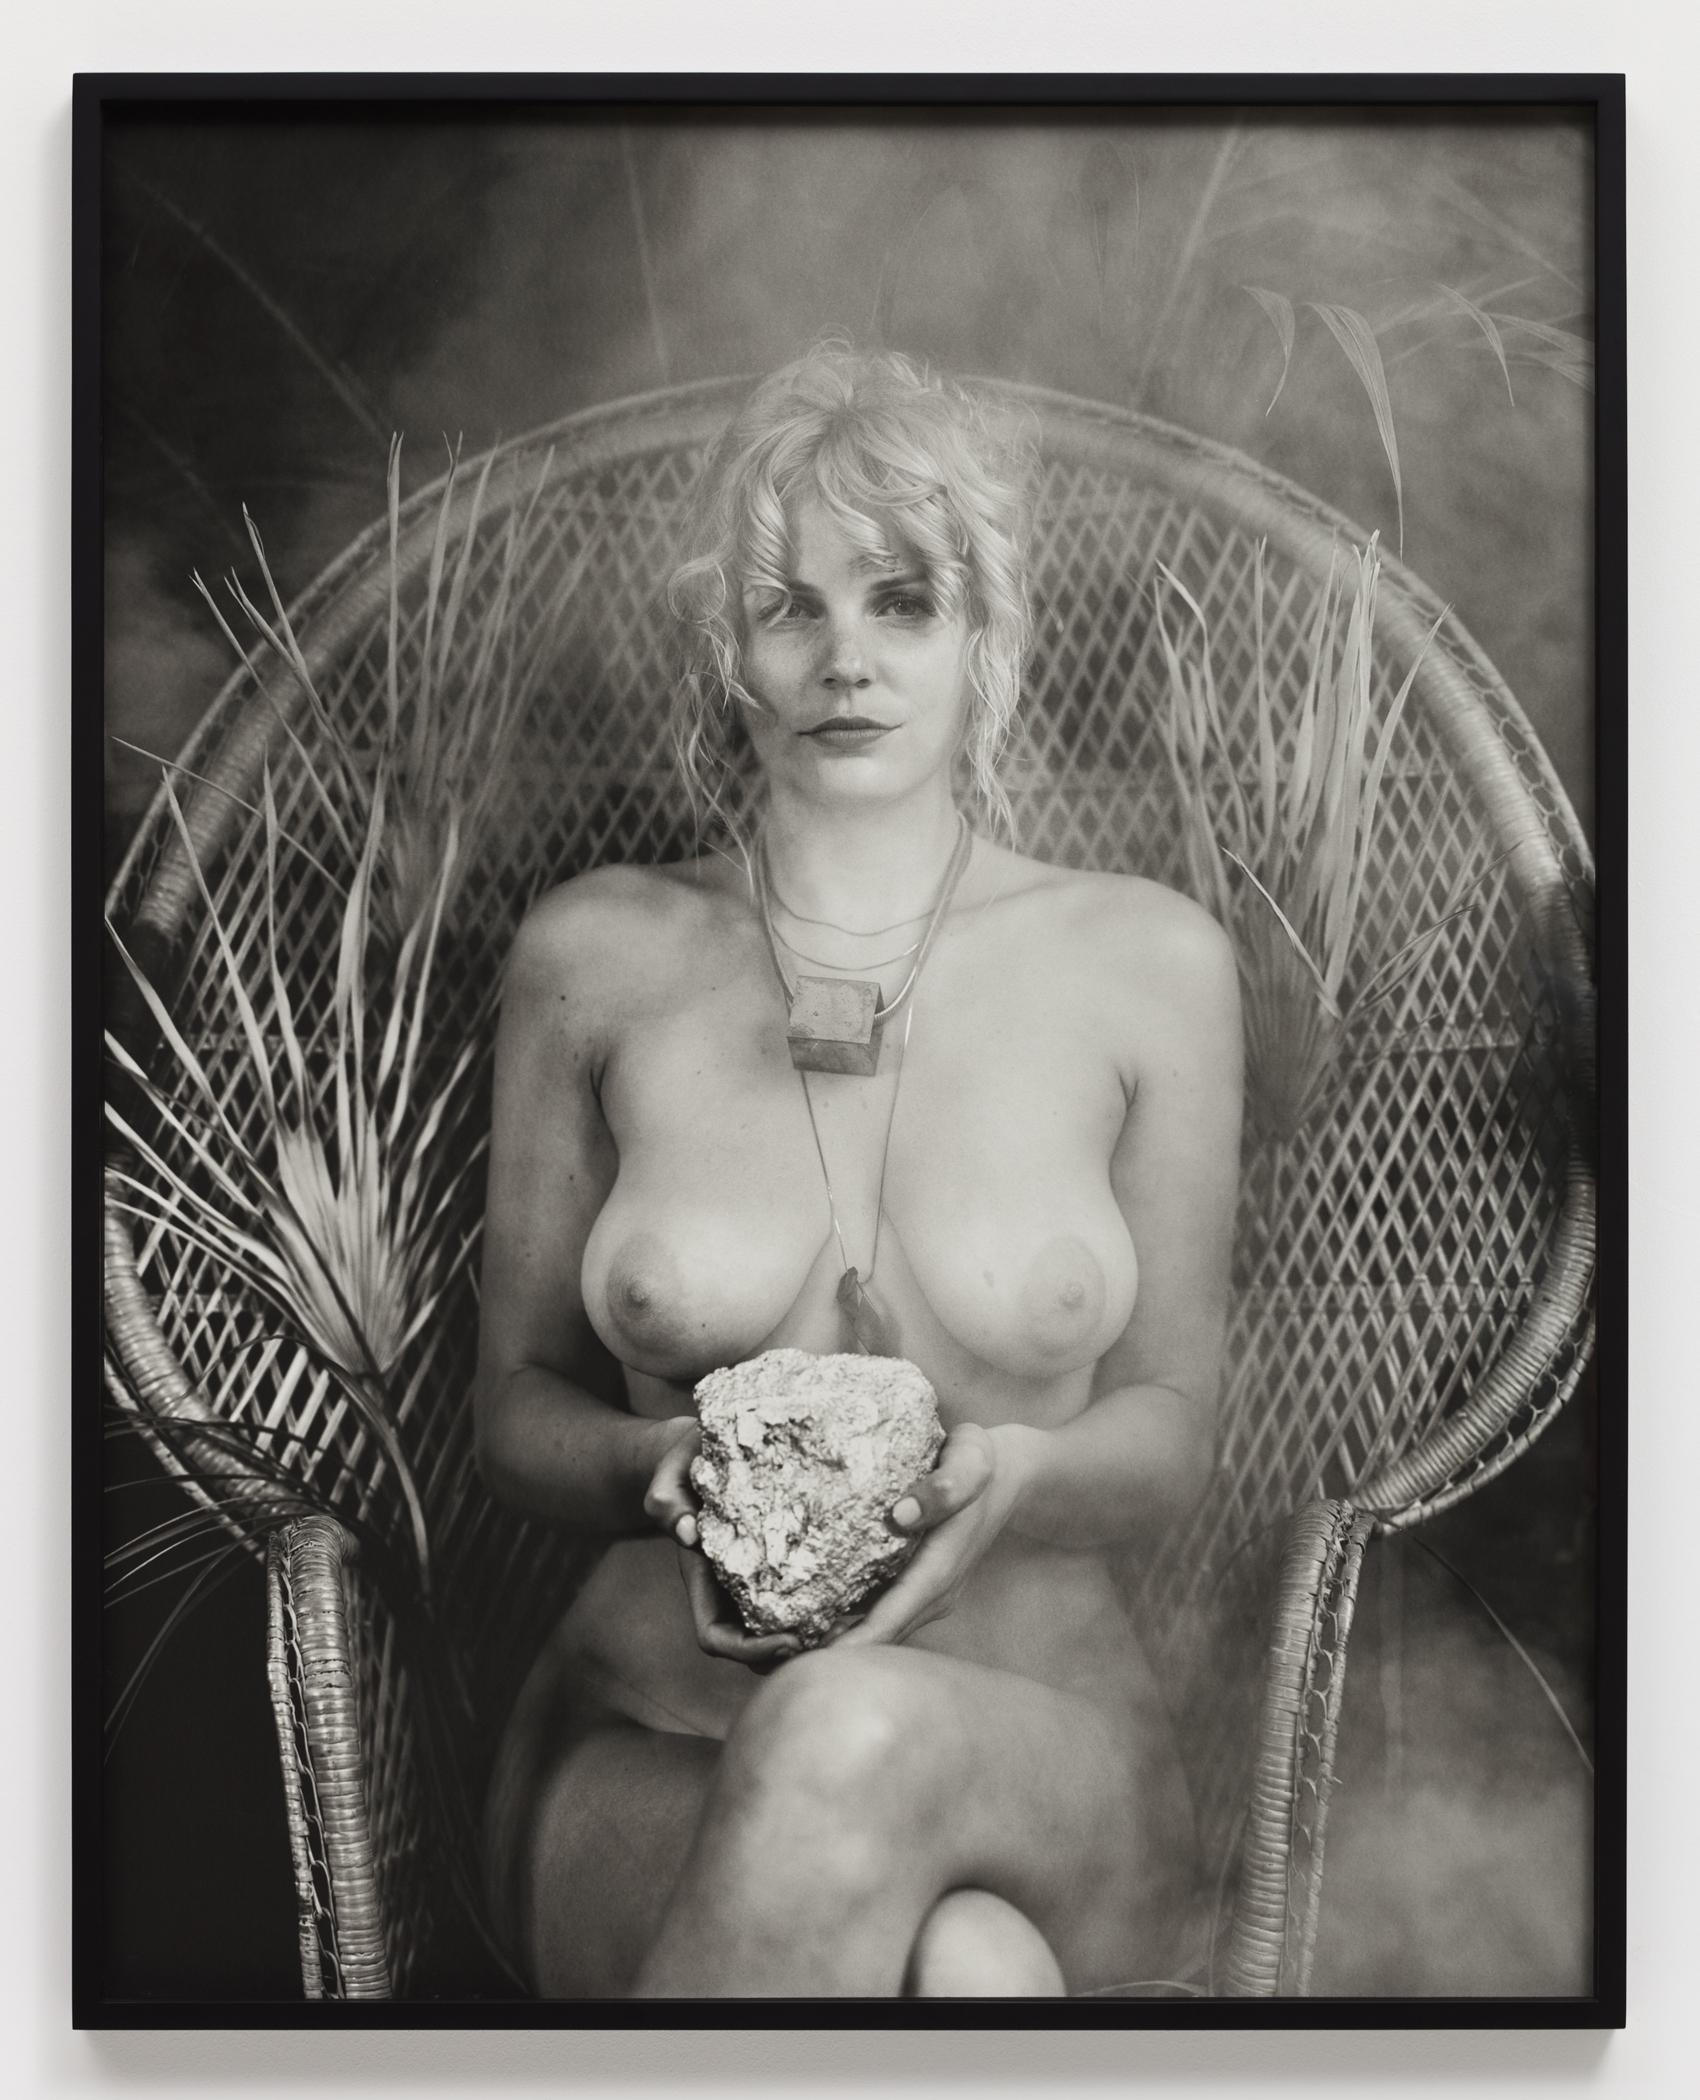 A naked, feminine person holding a rock sits in a chair.